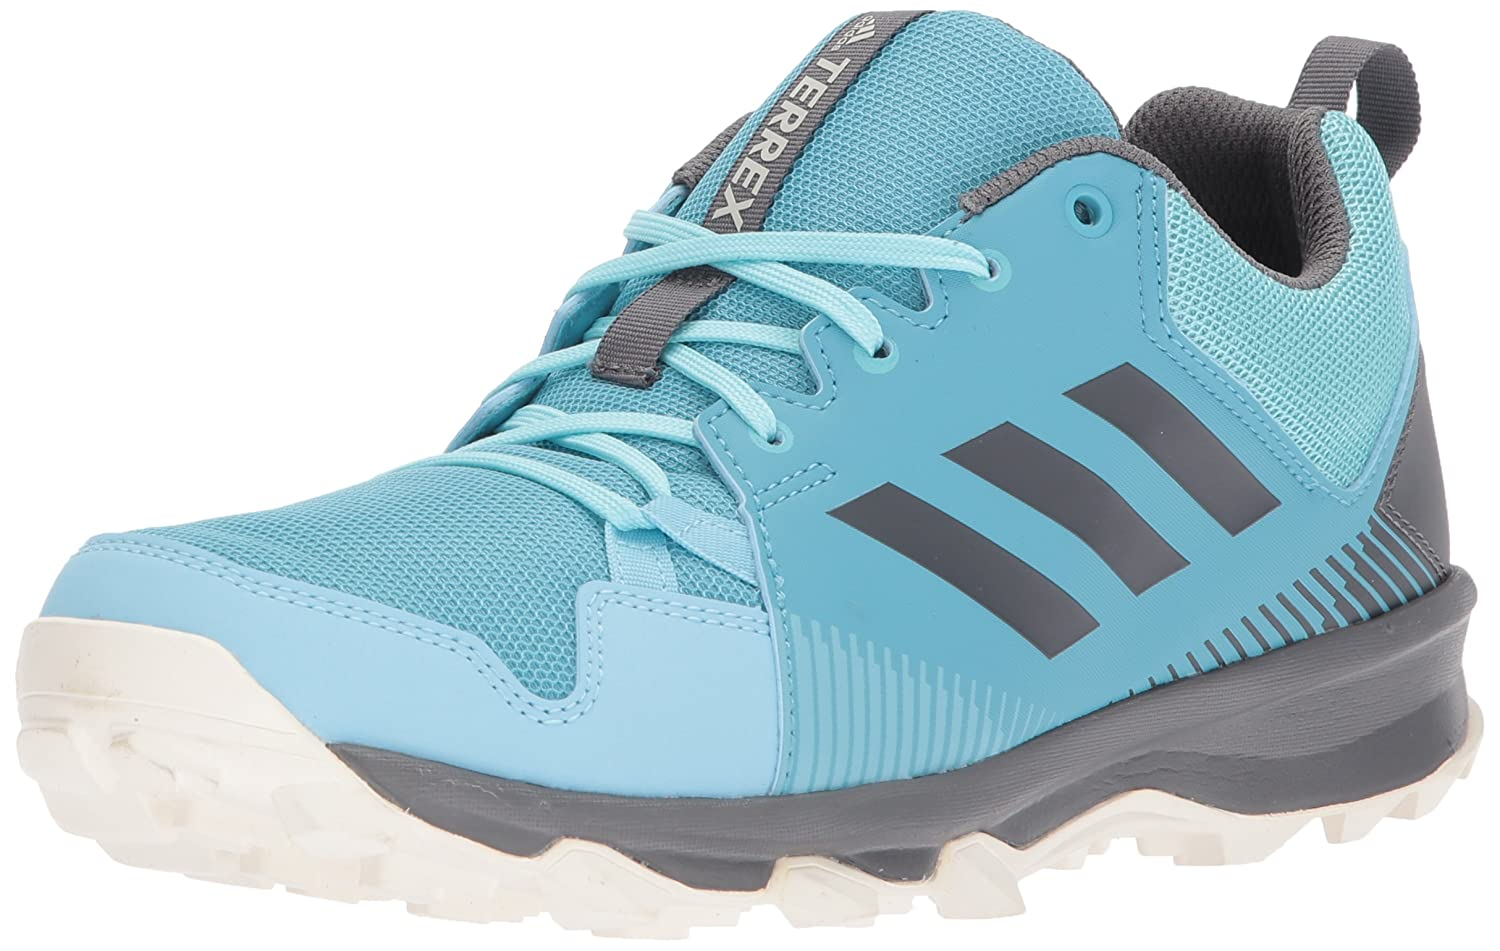 ceb1490f6ec0 adidas adidas adidas outdoor Women s Terrex Tracerocker W Trail Running Shoe  B01MR35F1M 9.5 M US